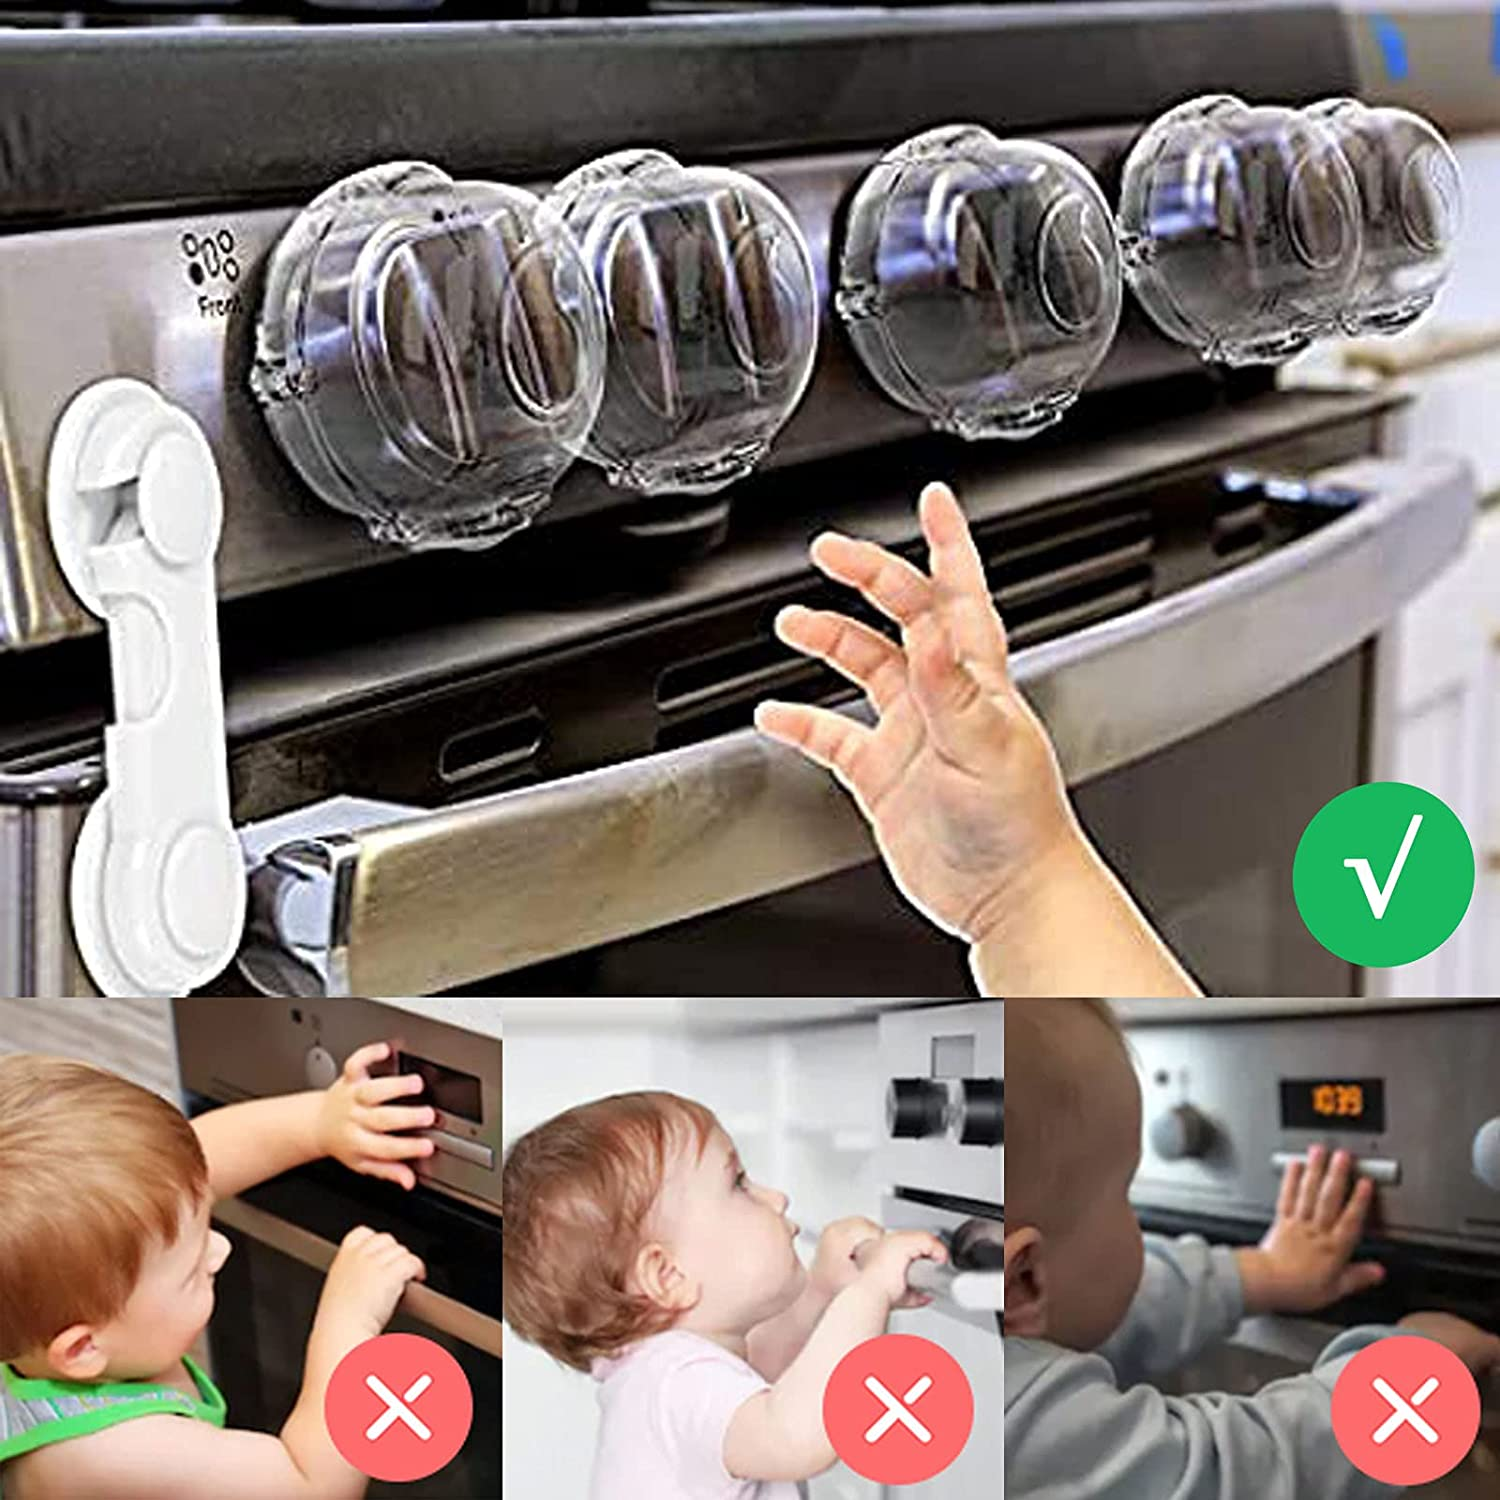 Stove Knob Covers for Child Safety, 2 Pcs Oven Lock Child Safety and 4 Pcs Gas Stove Knob Covers Kitchen Safety Guards for Kids, Baby, Toddler, Clear Oven and Gas Knob Cover